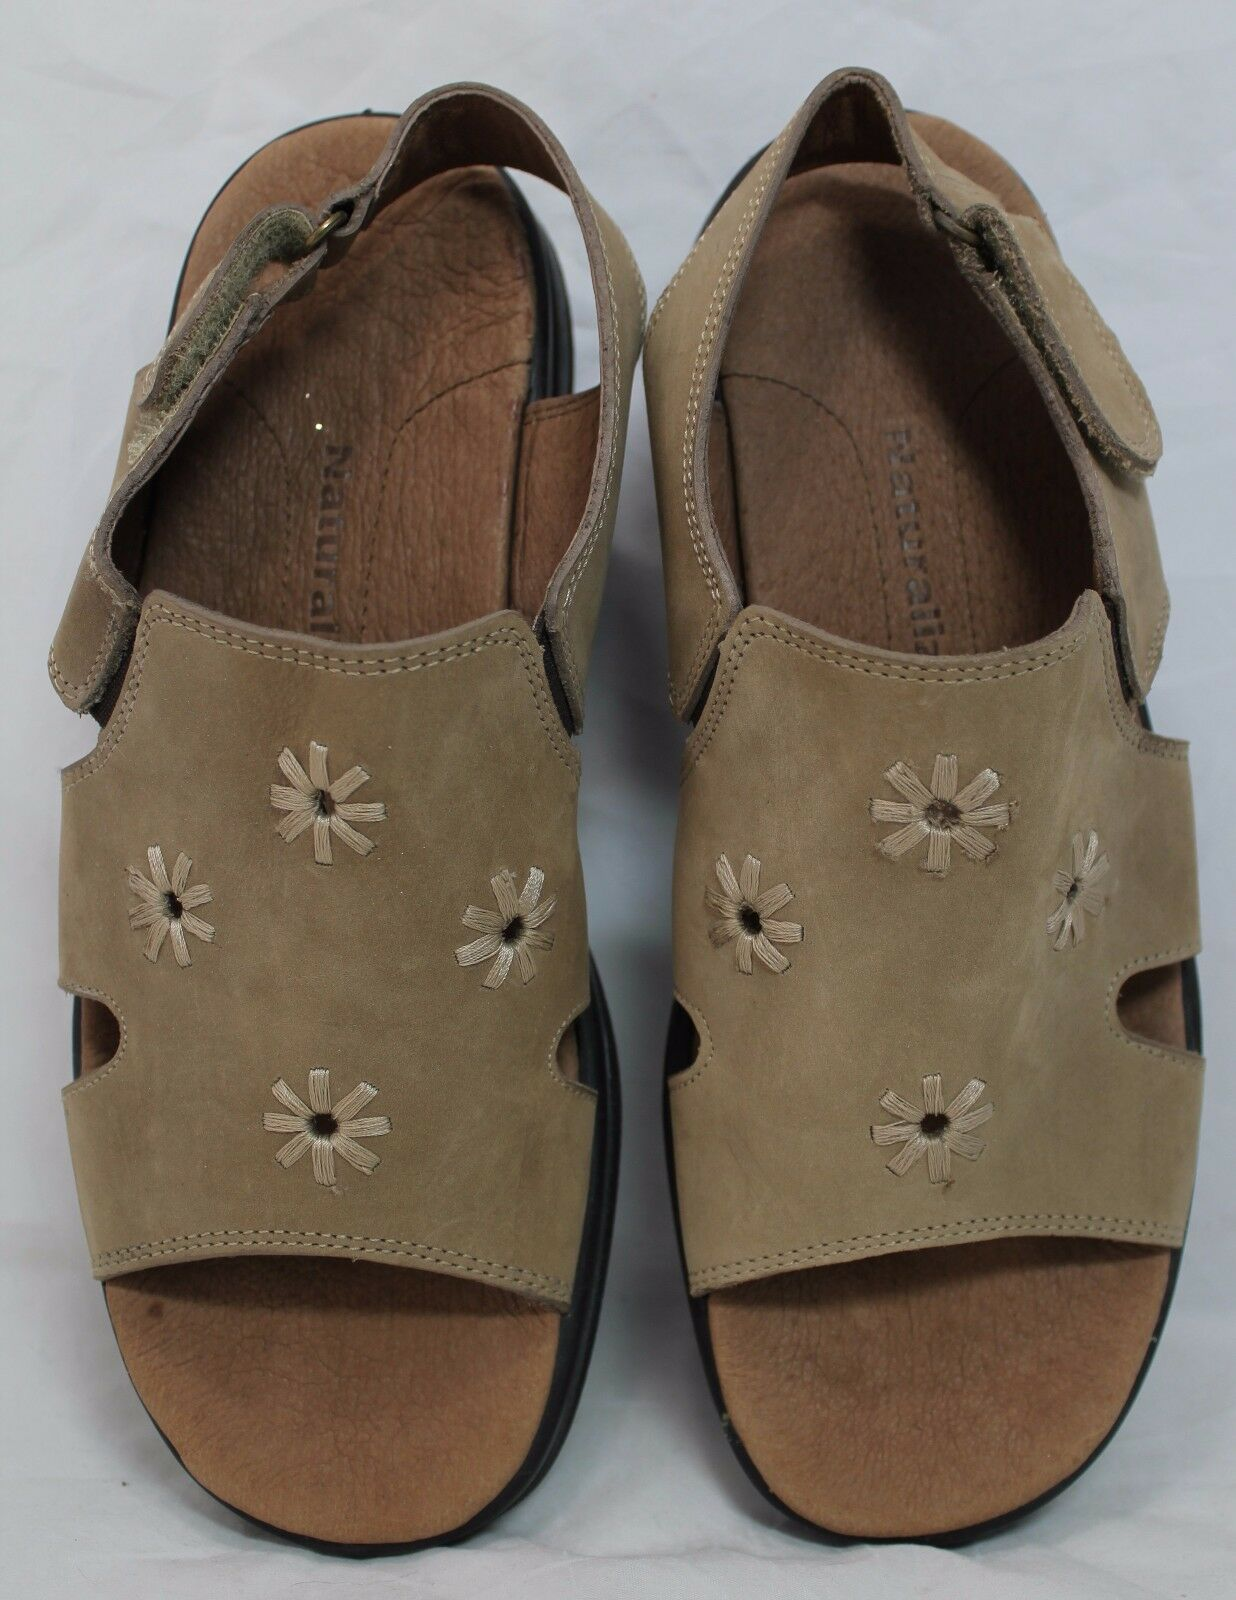 Women's Naturalizer Casual Wedge Sandals 8 Brown Adjustable Back size 8 Sandals M EUC cf0108